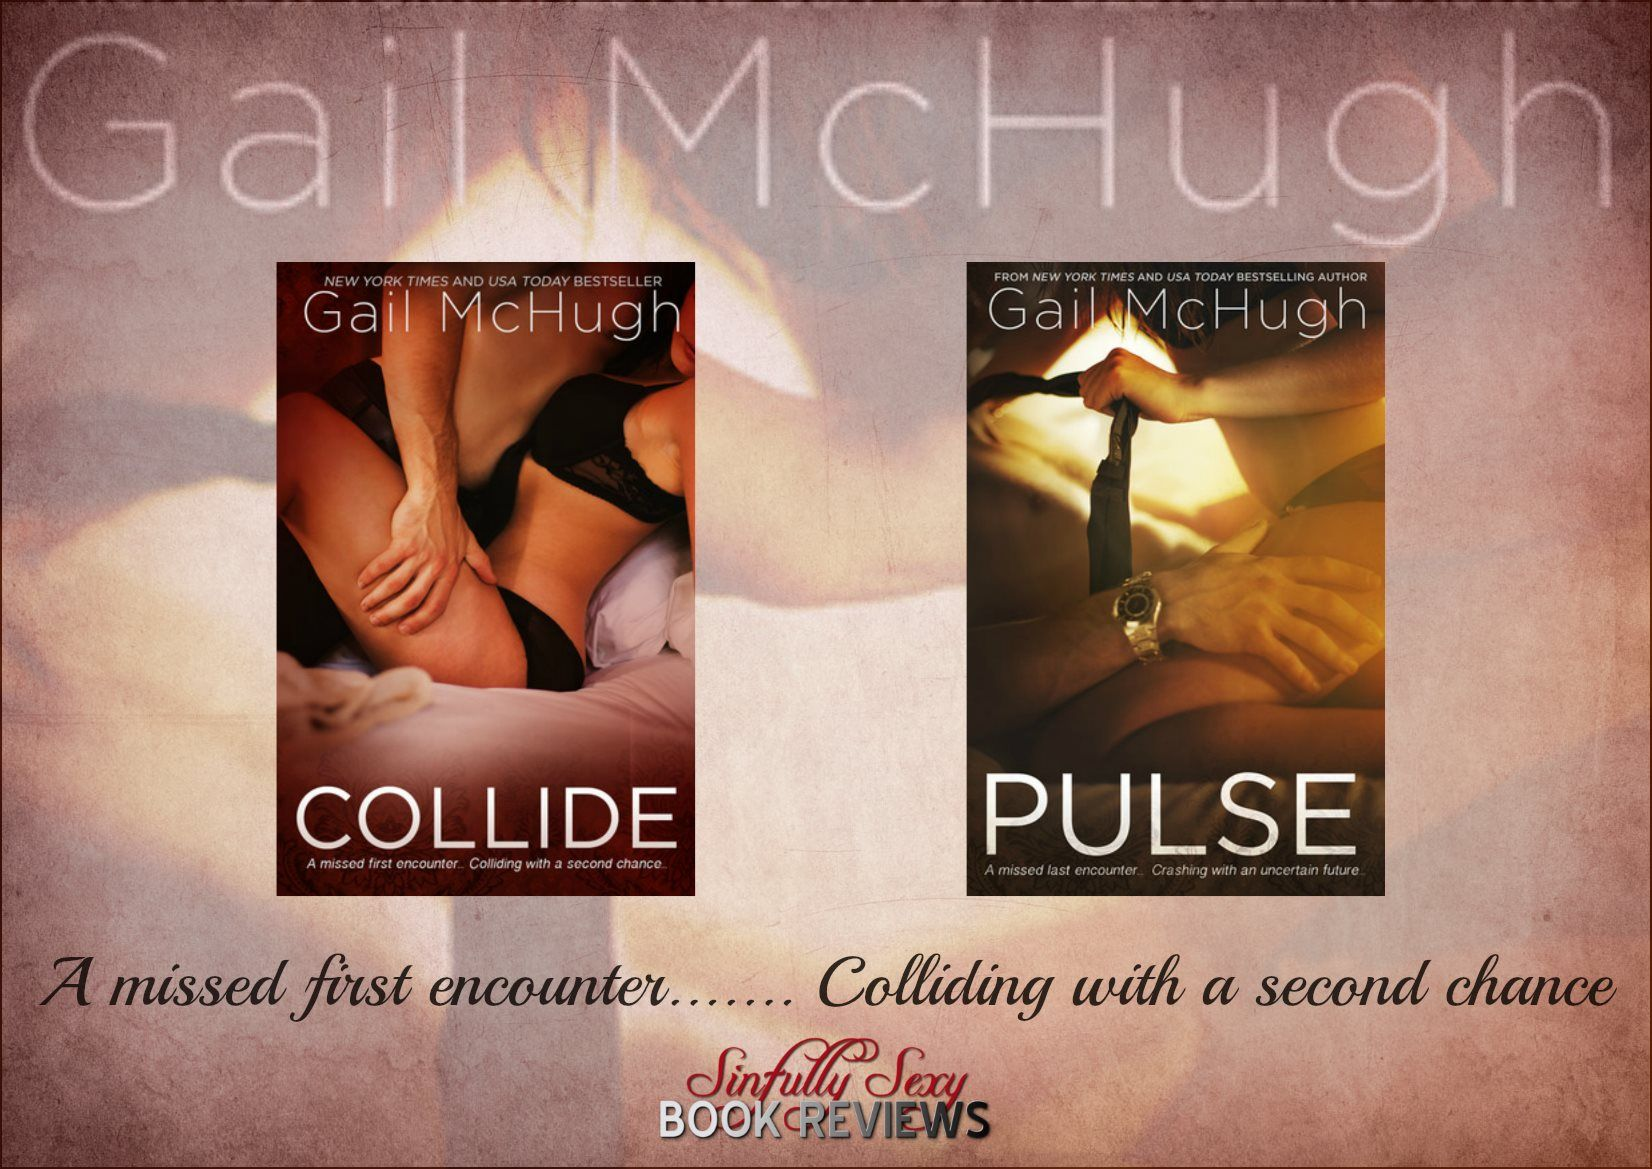 Megan Hart Libros Collide And Pulse Gail Mchugh Books Worth Reading